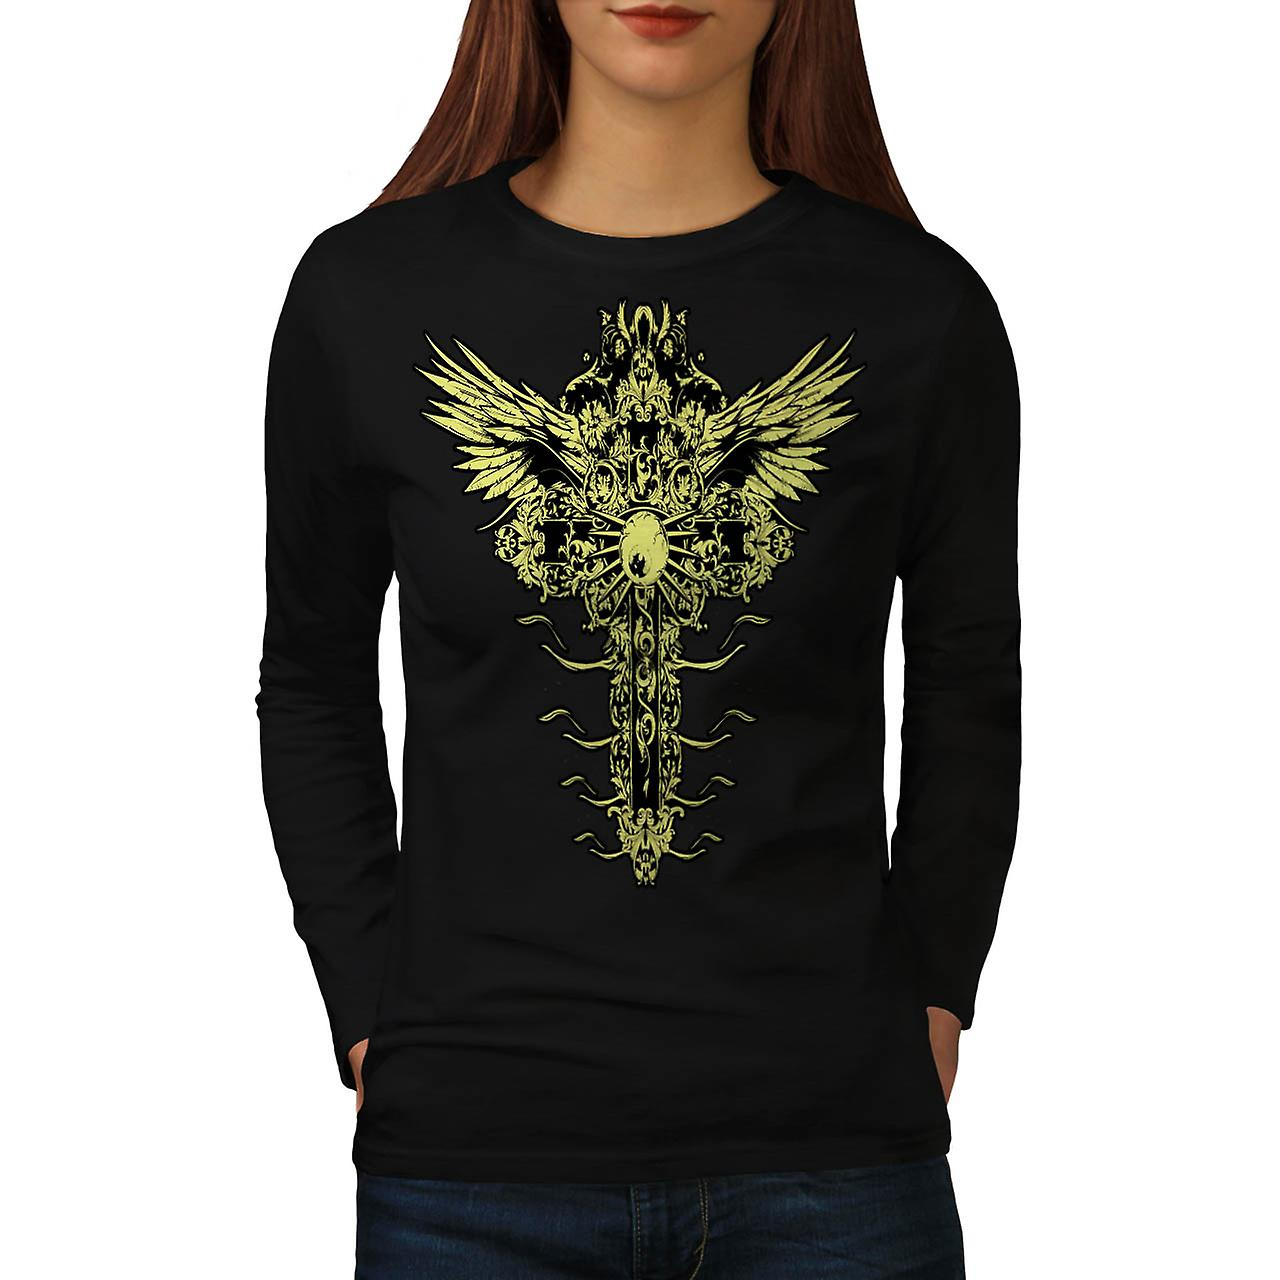 Moster Eye épingle ailes Grave pierres femmes noir Long Sleeve T-shirt | Wellcoda